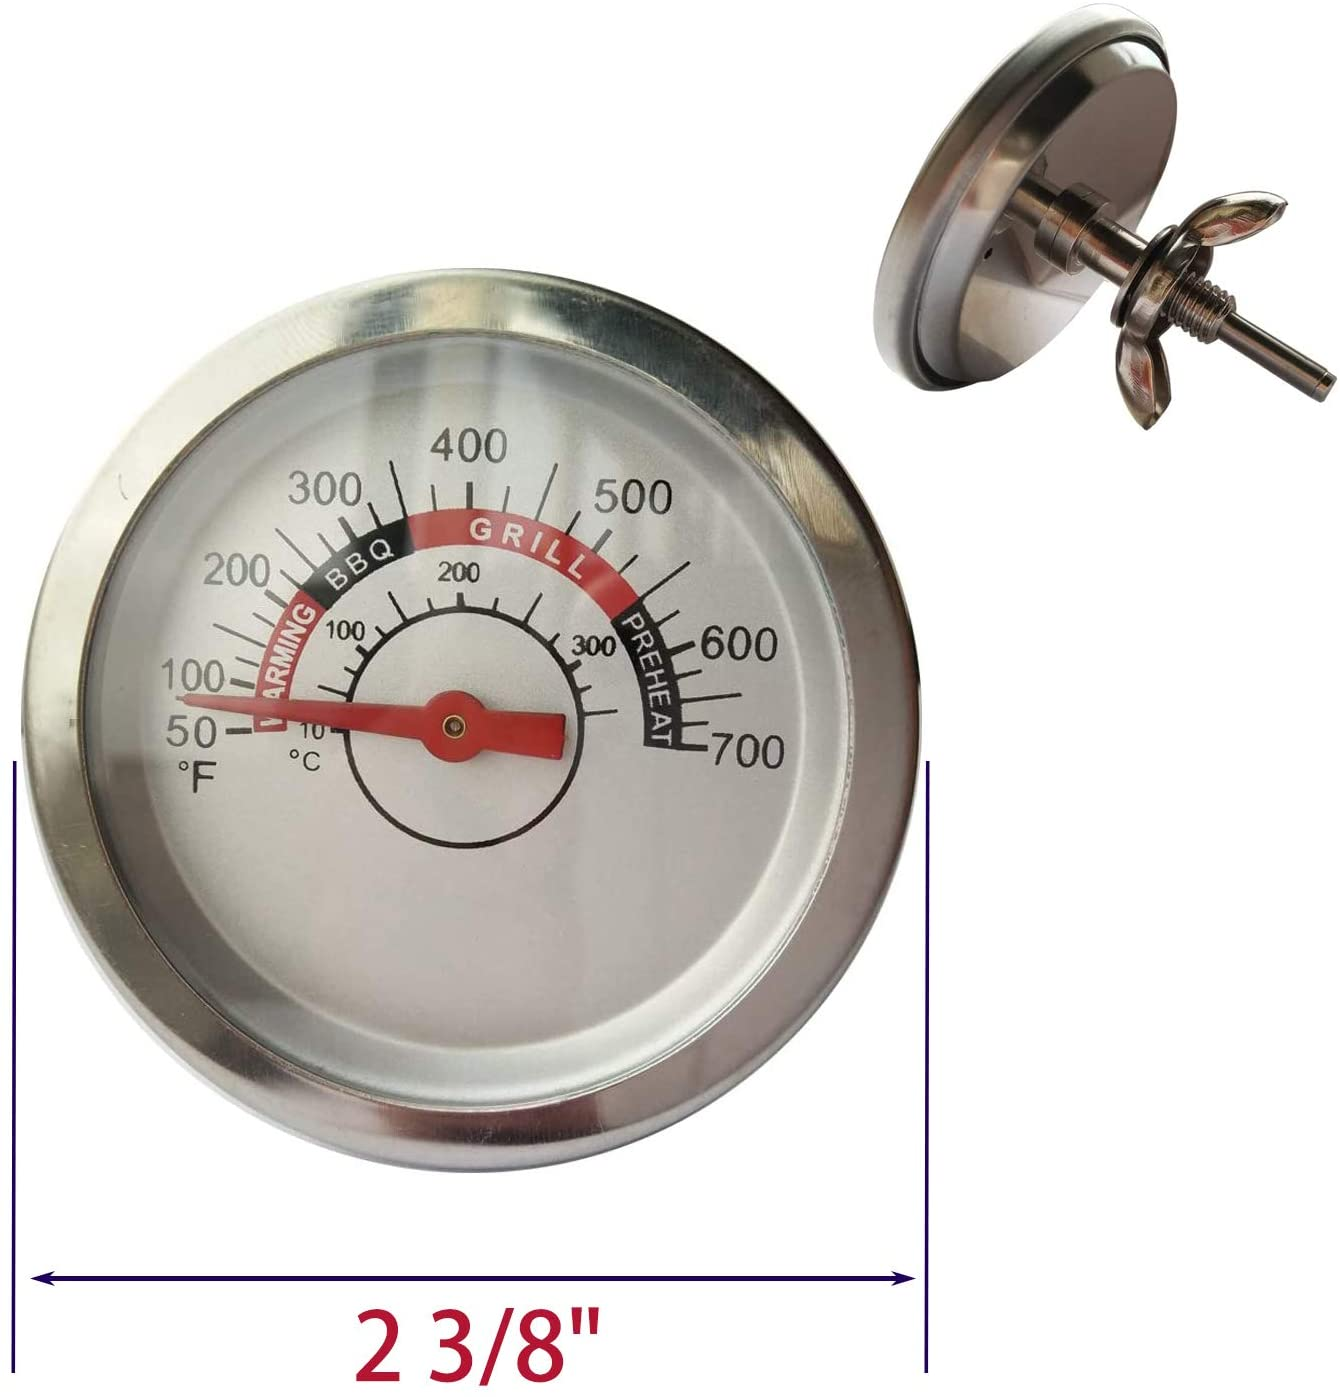 BBQ-Element Grill Thermometer Heat Indicator Replacement for Charbroil 463449914, 463241113, 463268107, Temperature Gauge for Brinkmann 810-3660-S Grill Models.